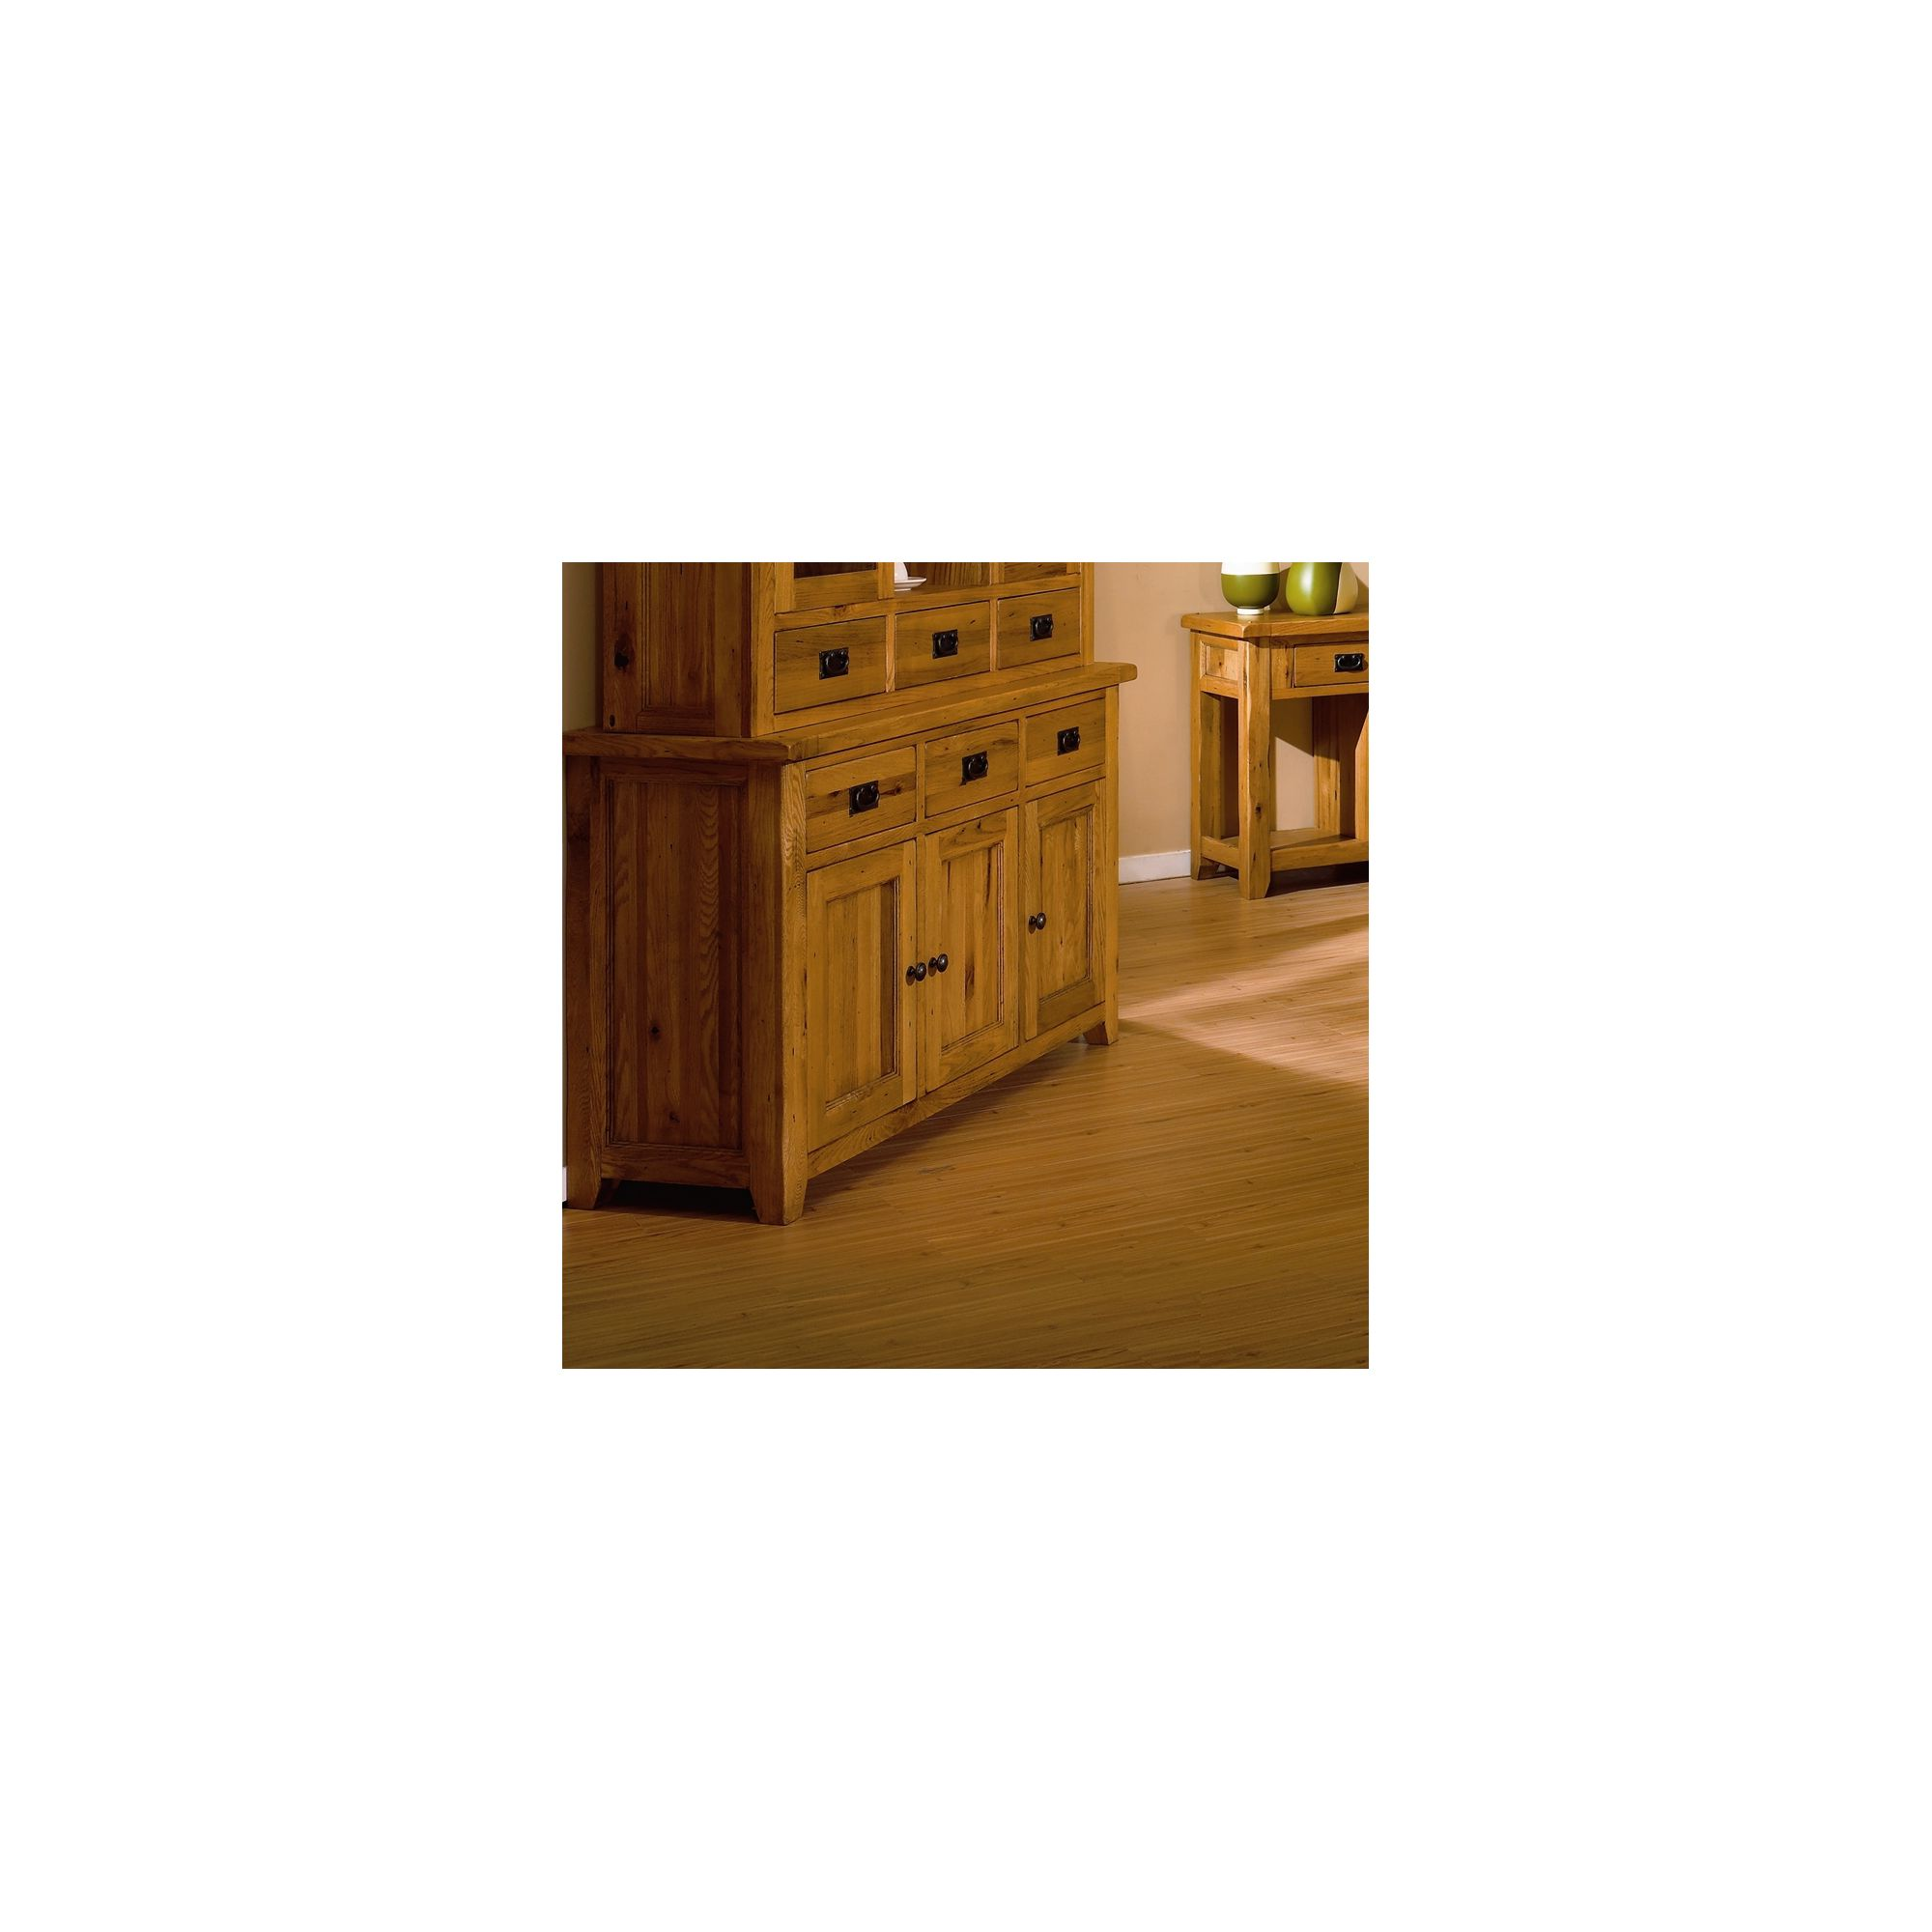 Alterton Furniture Louisiana Oak Large Sideboard at Tesco Direct